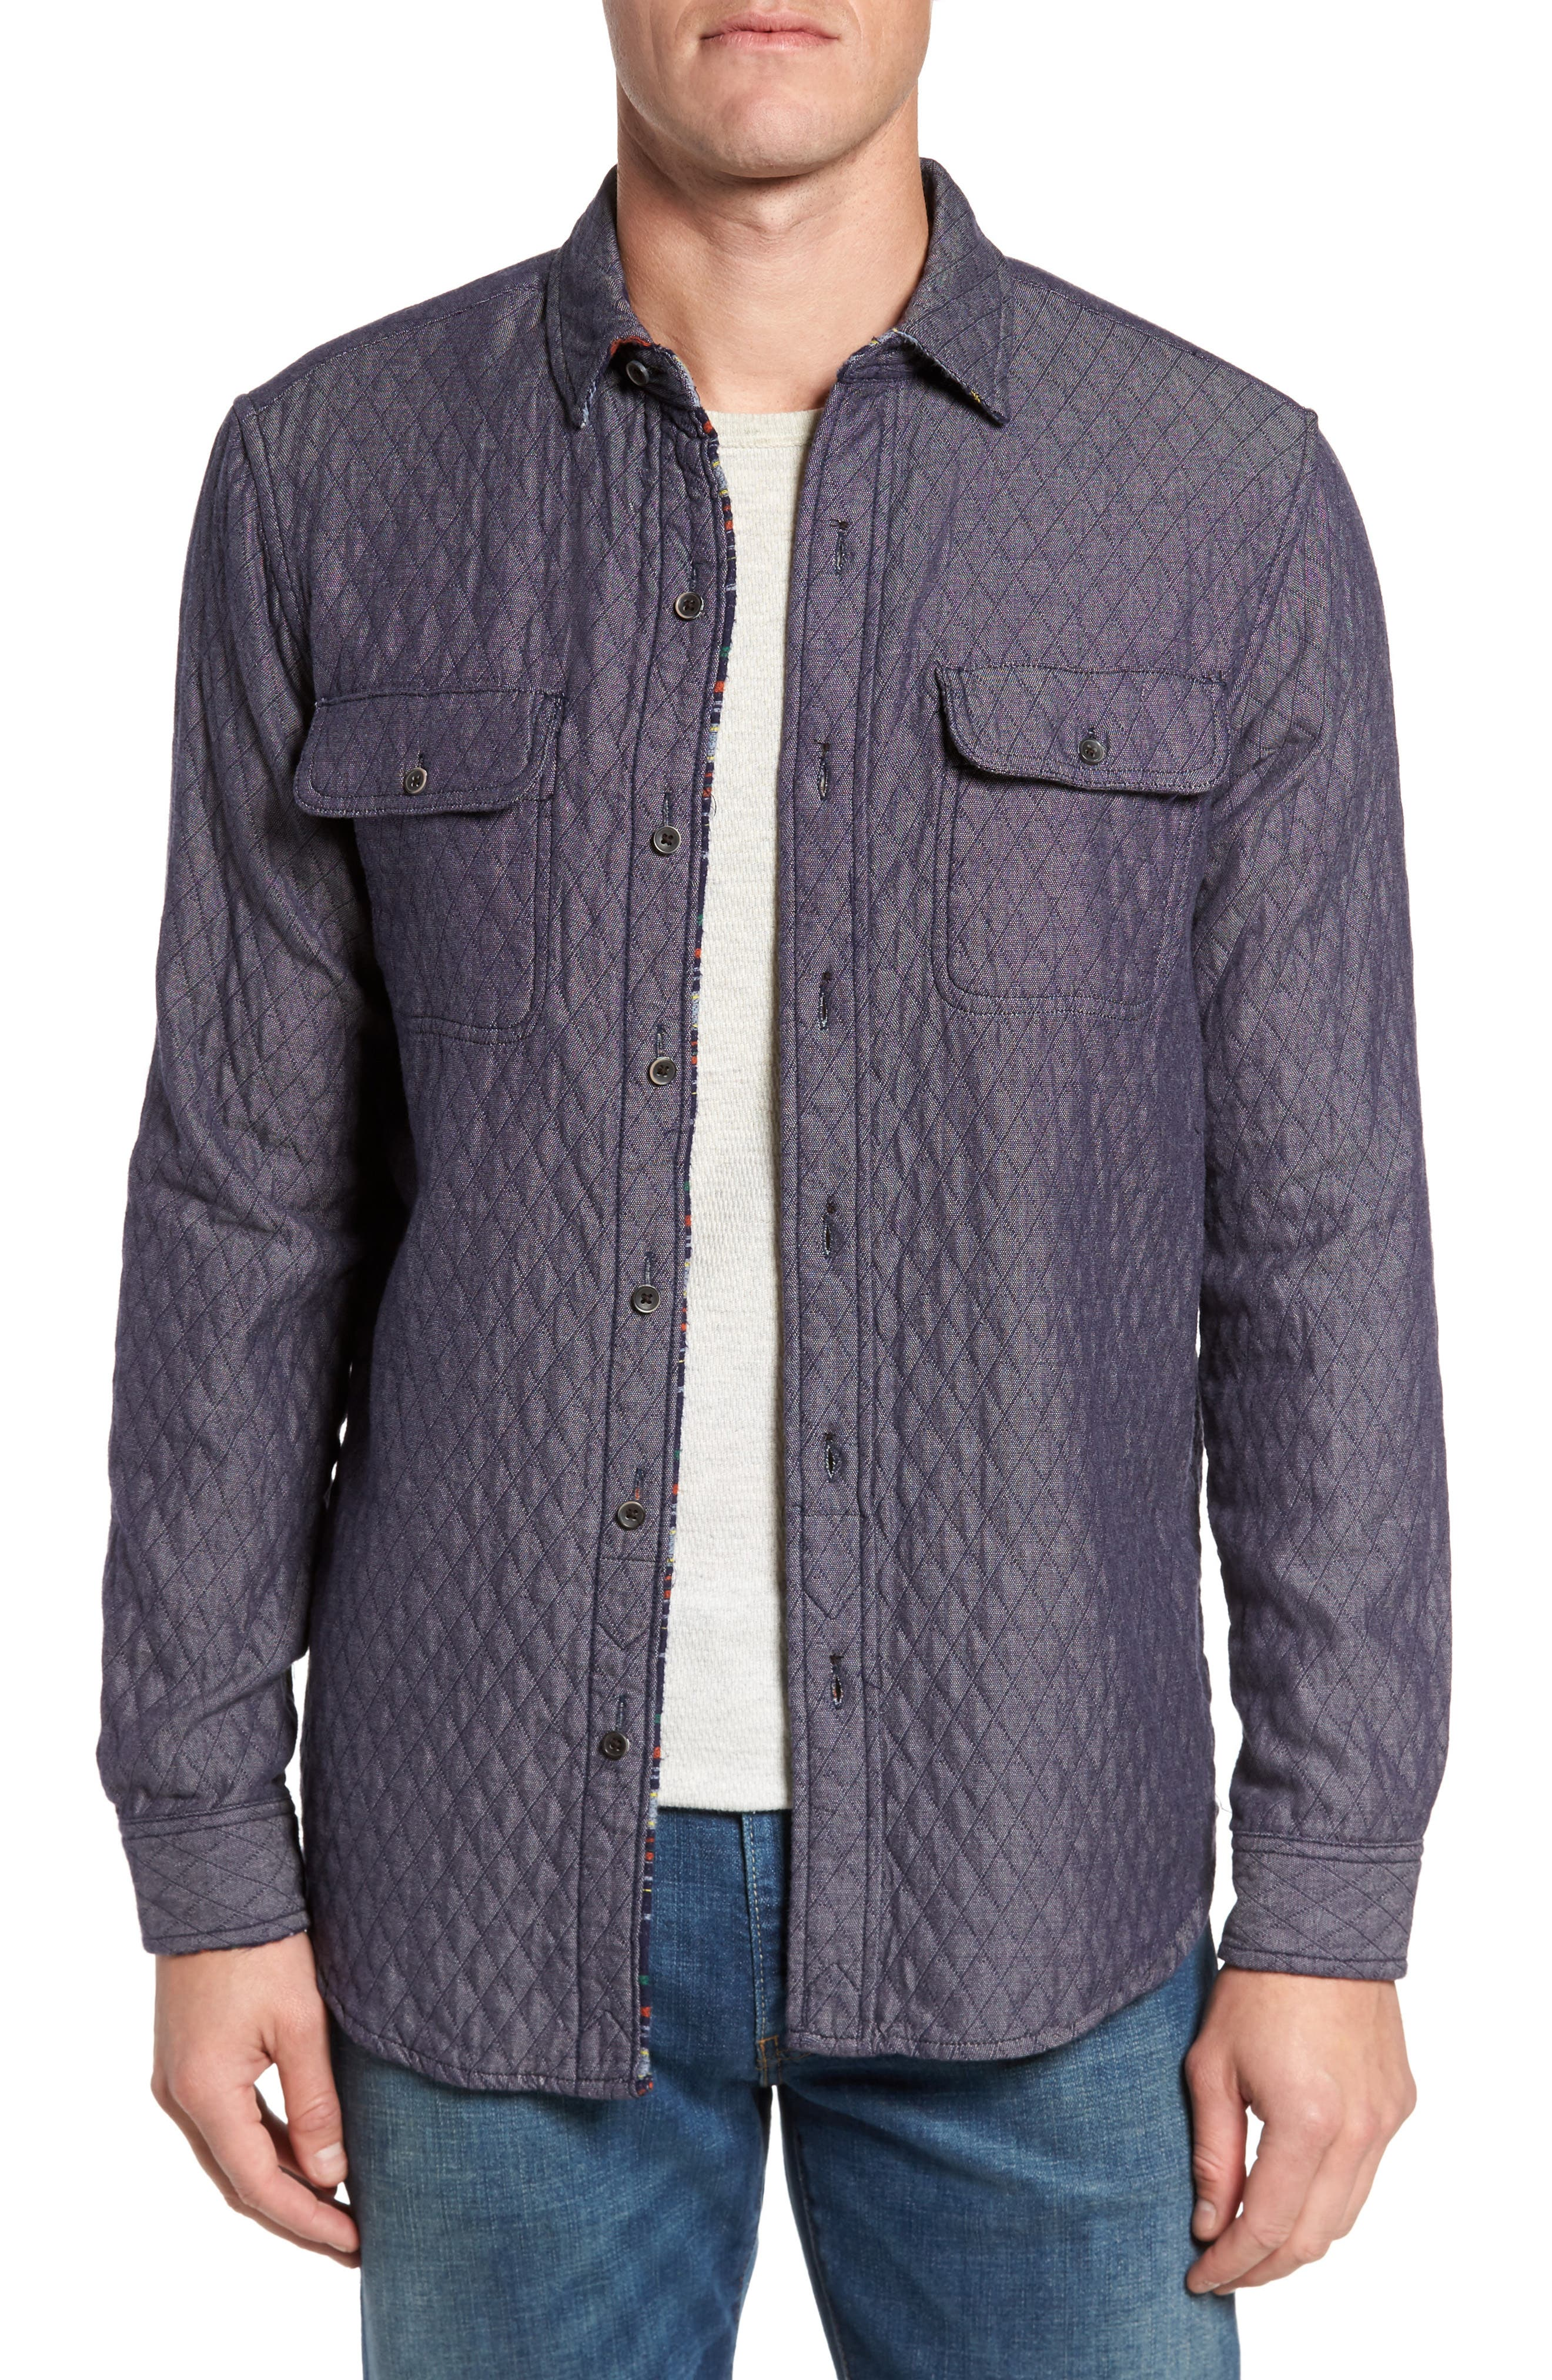 Tailor Vintage Reversible Double-Face Quilted Shirt Jacket